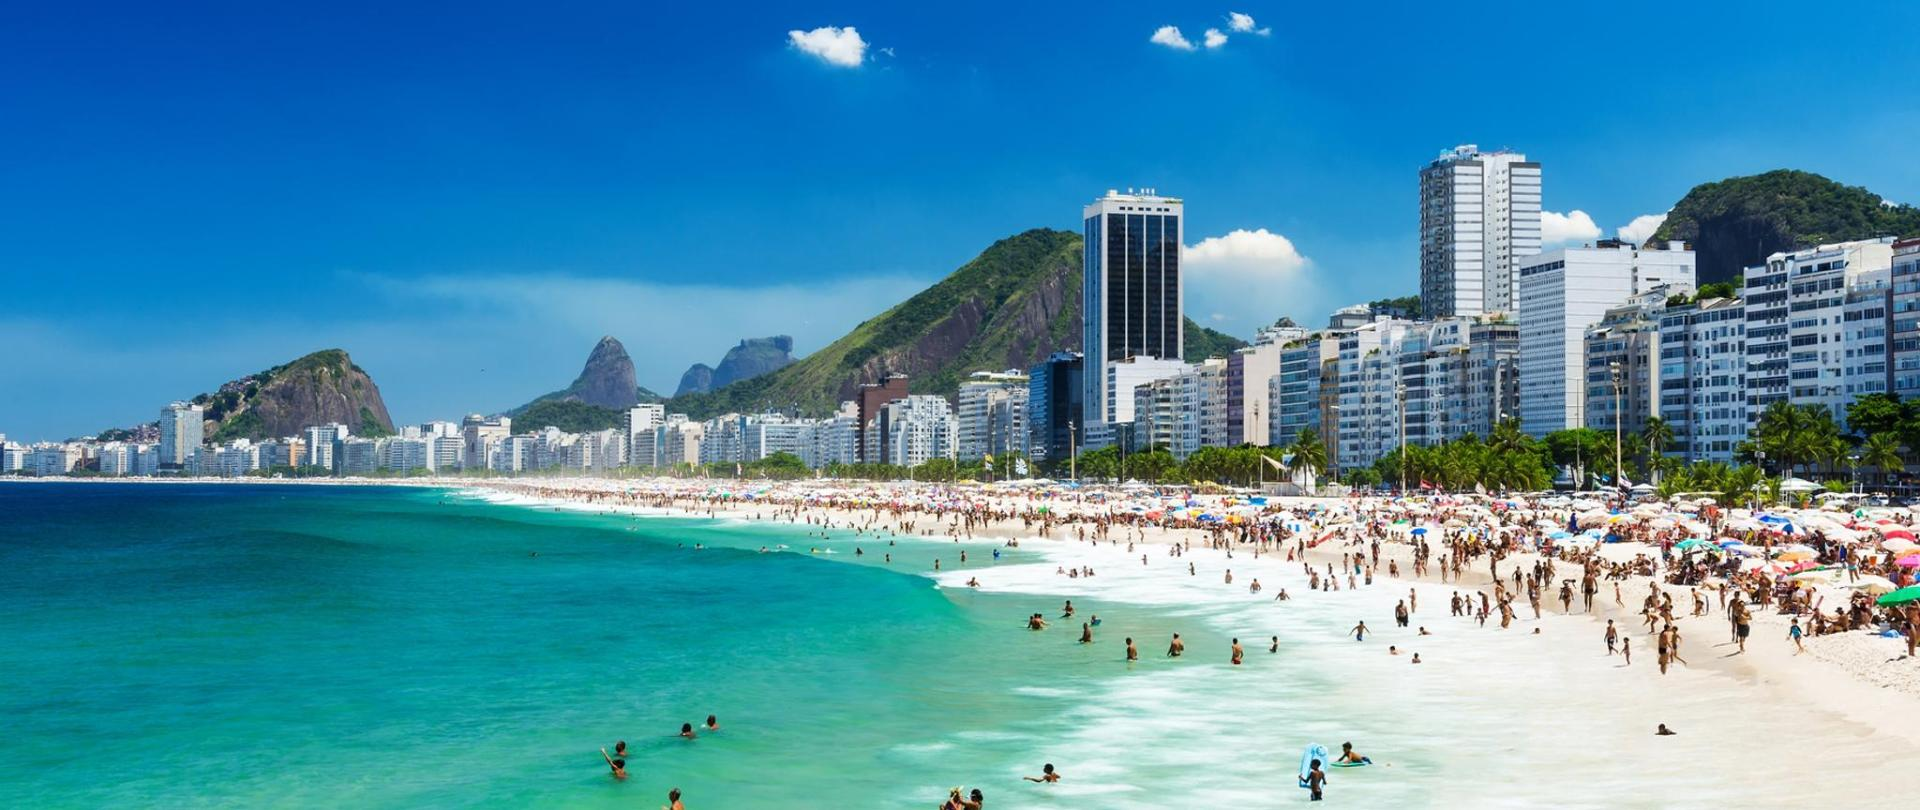 1469063274-Copacabana_beach.jpg